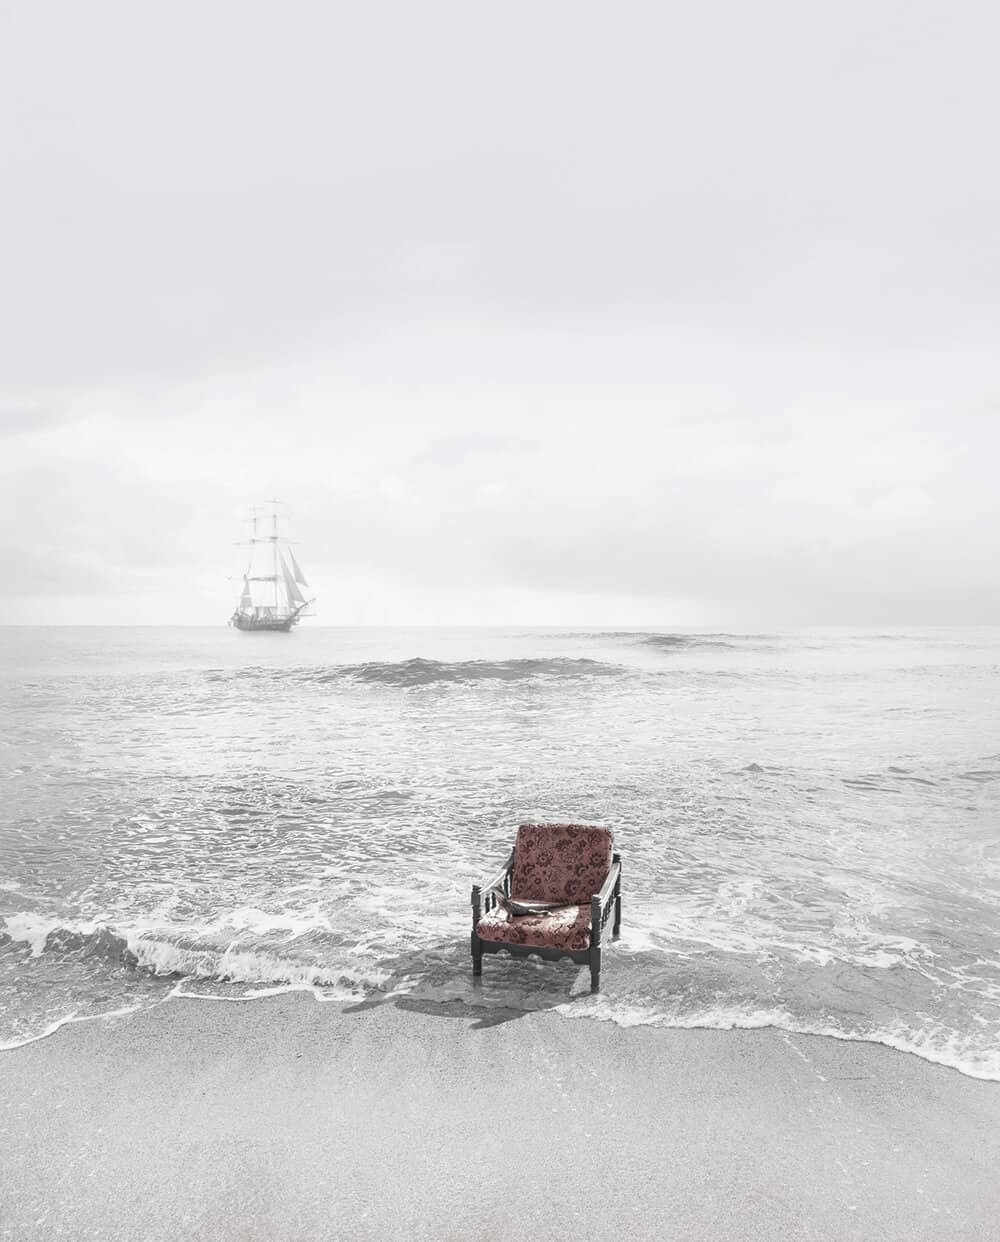 Michael Cook, Undiscovered 8, 2010. Inkjet print on cotton rag, 124 x 100cm. Courtesy of the artist & This Is No Fantasy.